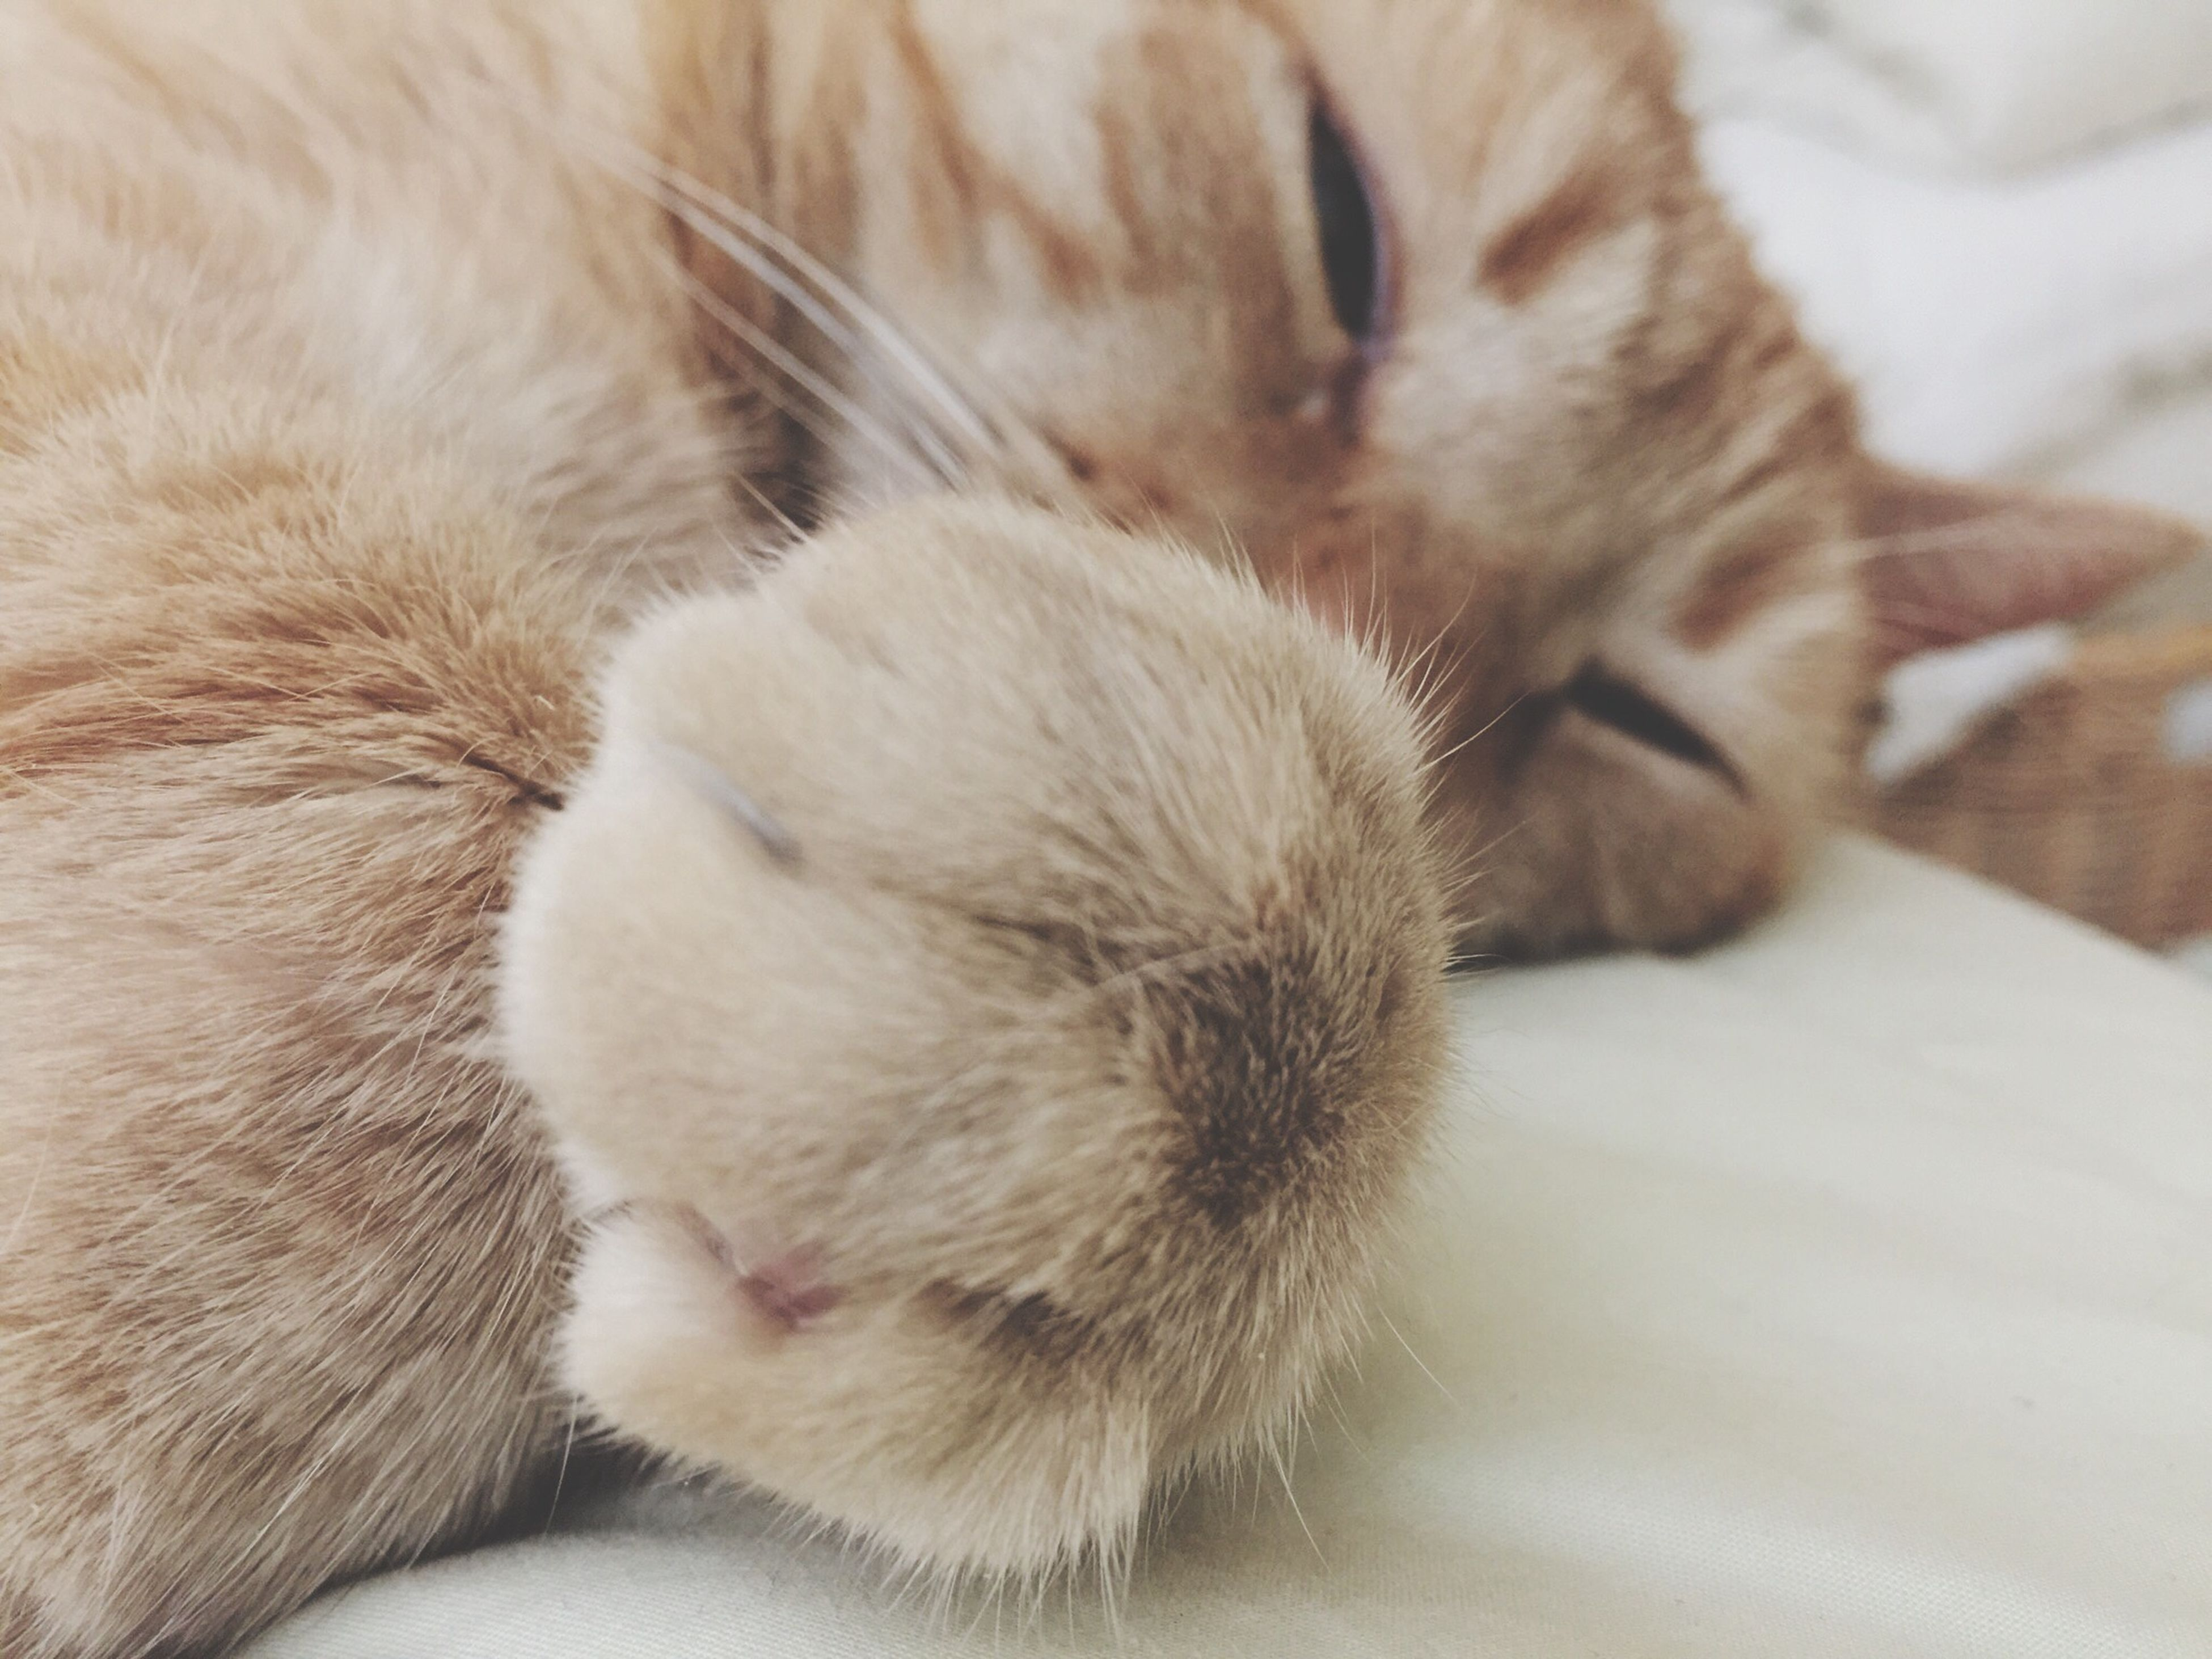 pets, domestic animals, indoors, animal themes, domestic cat, mammal, one animal, cat, sleeping, relaxation, feline, resting, lying down, whisker, close-up, eyes closed, bed, home interior, comfortable, home